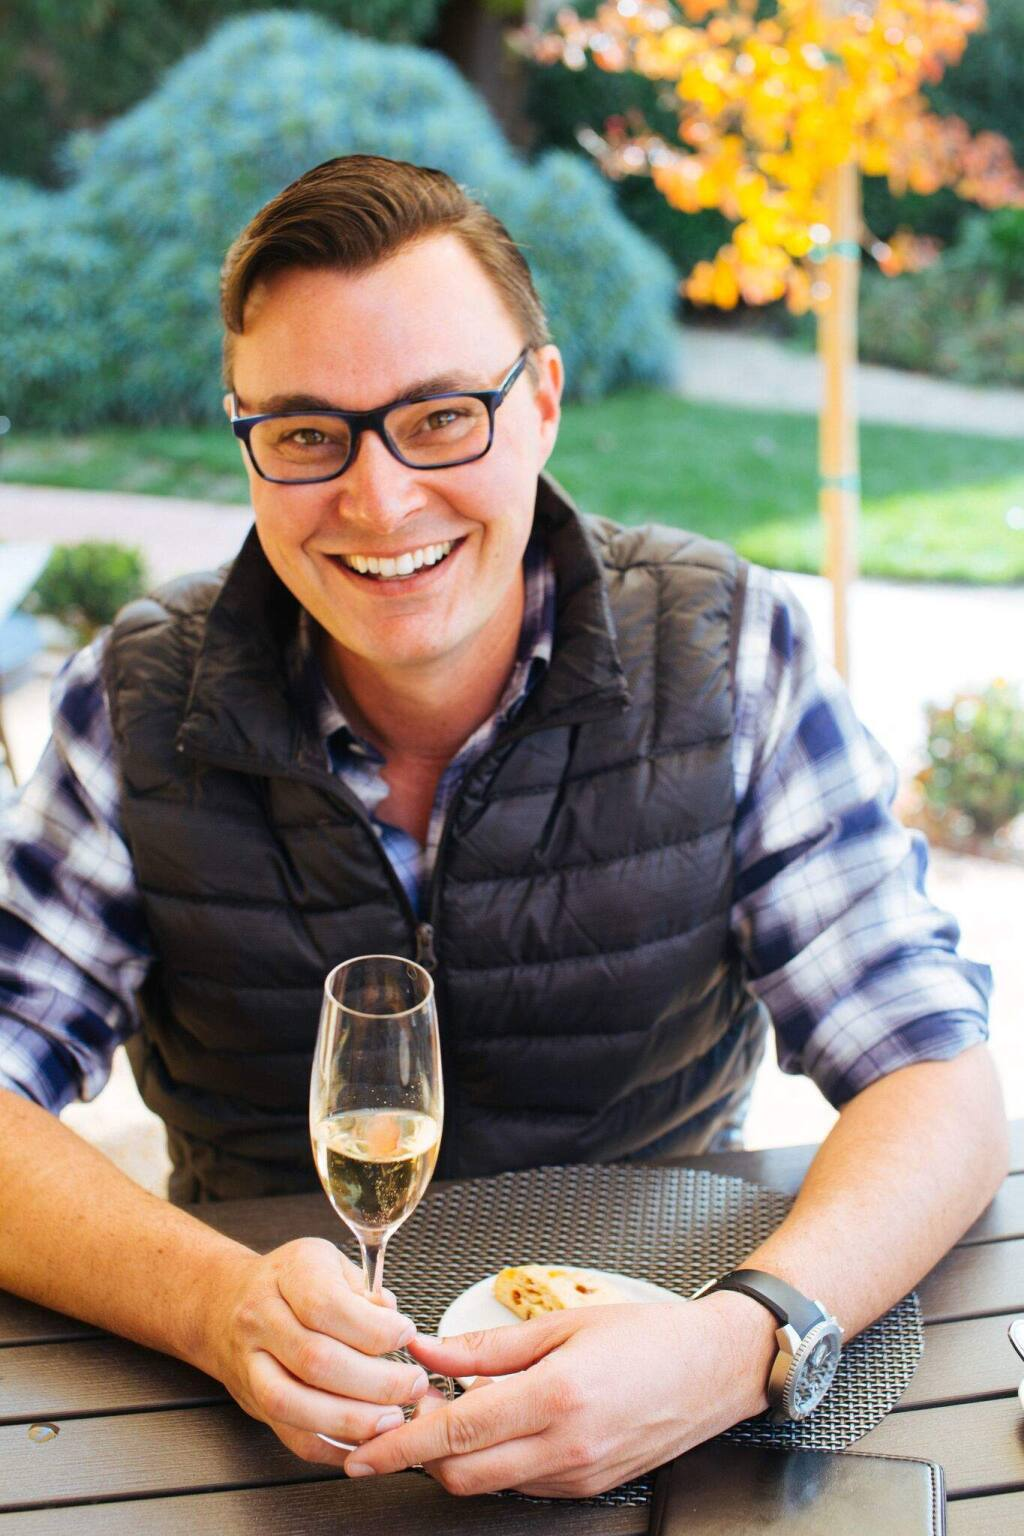 Landon McPherson, 35, founder of Harvest Card in Santa Rosa, is a North Bay Business Journal 2019 Forty Under 40 winner. (COURTESY PHOTO)